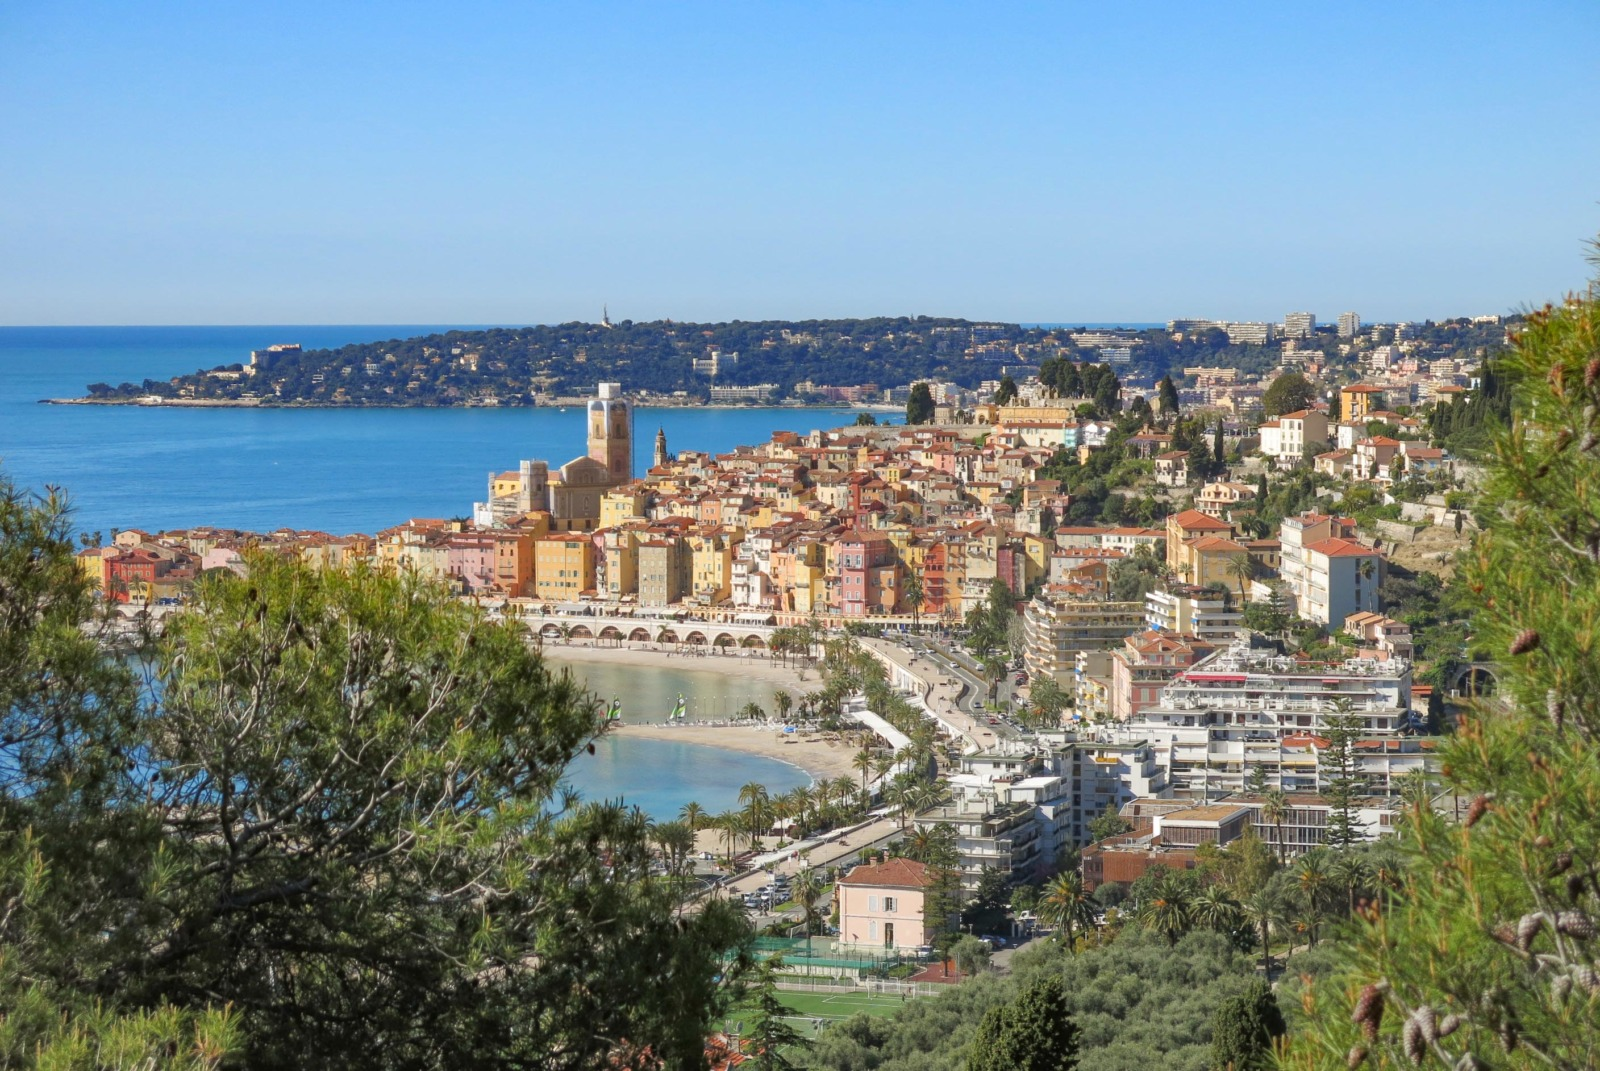 The old town of Menton from the Domaine des Colombières. Photo: Tangopaso (Public Domain)